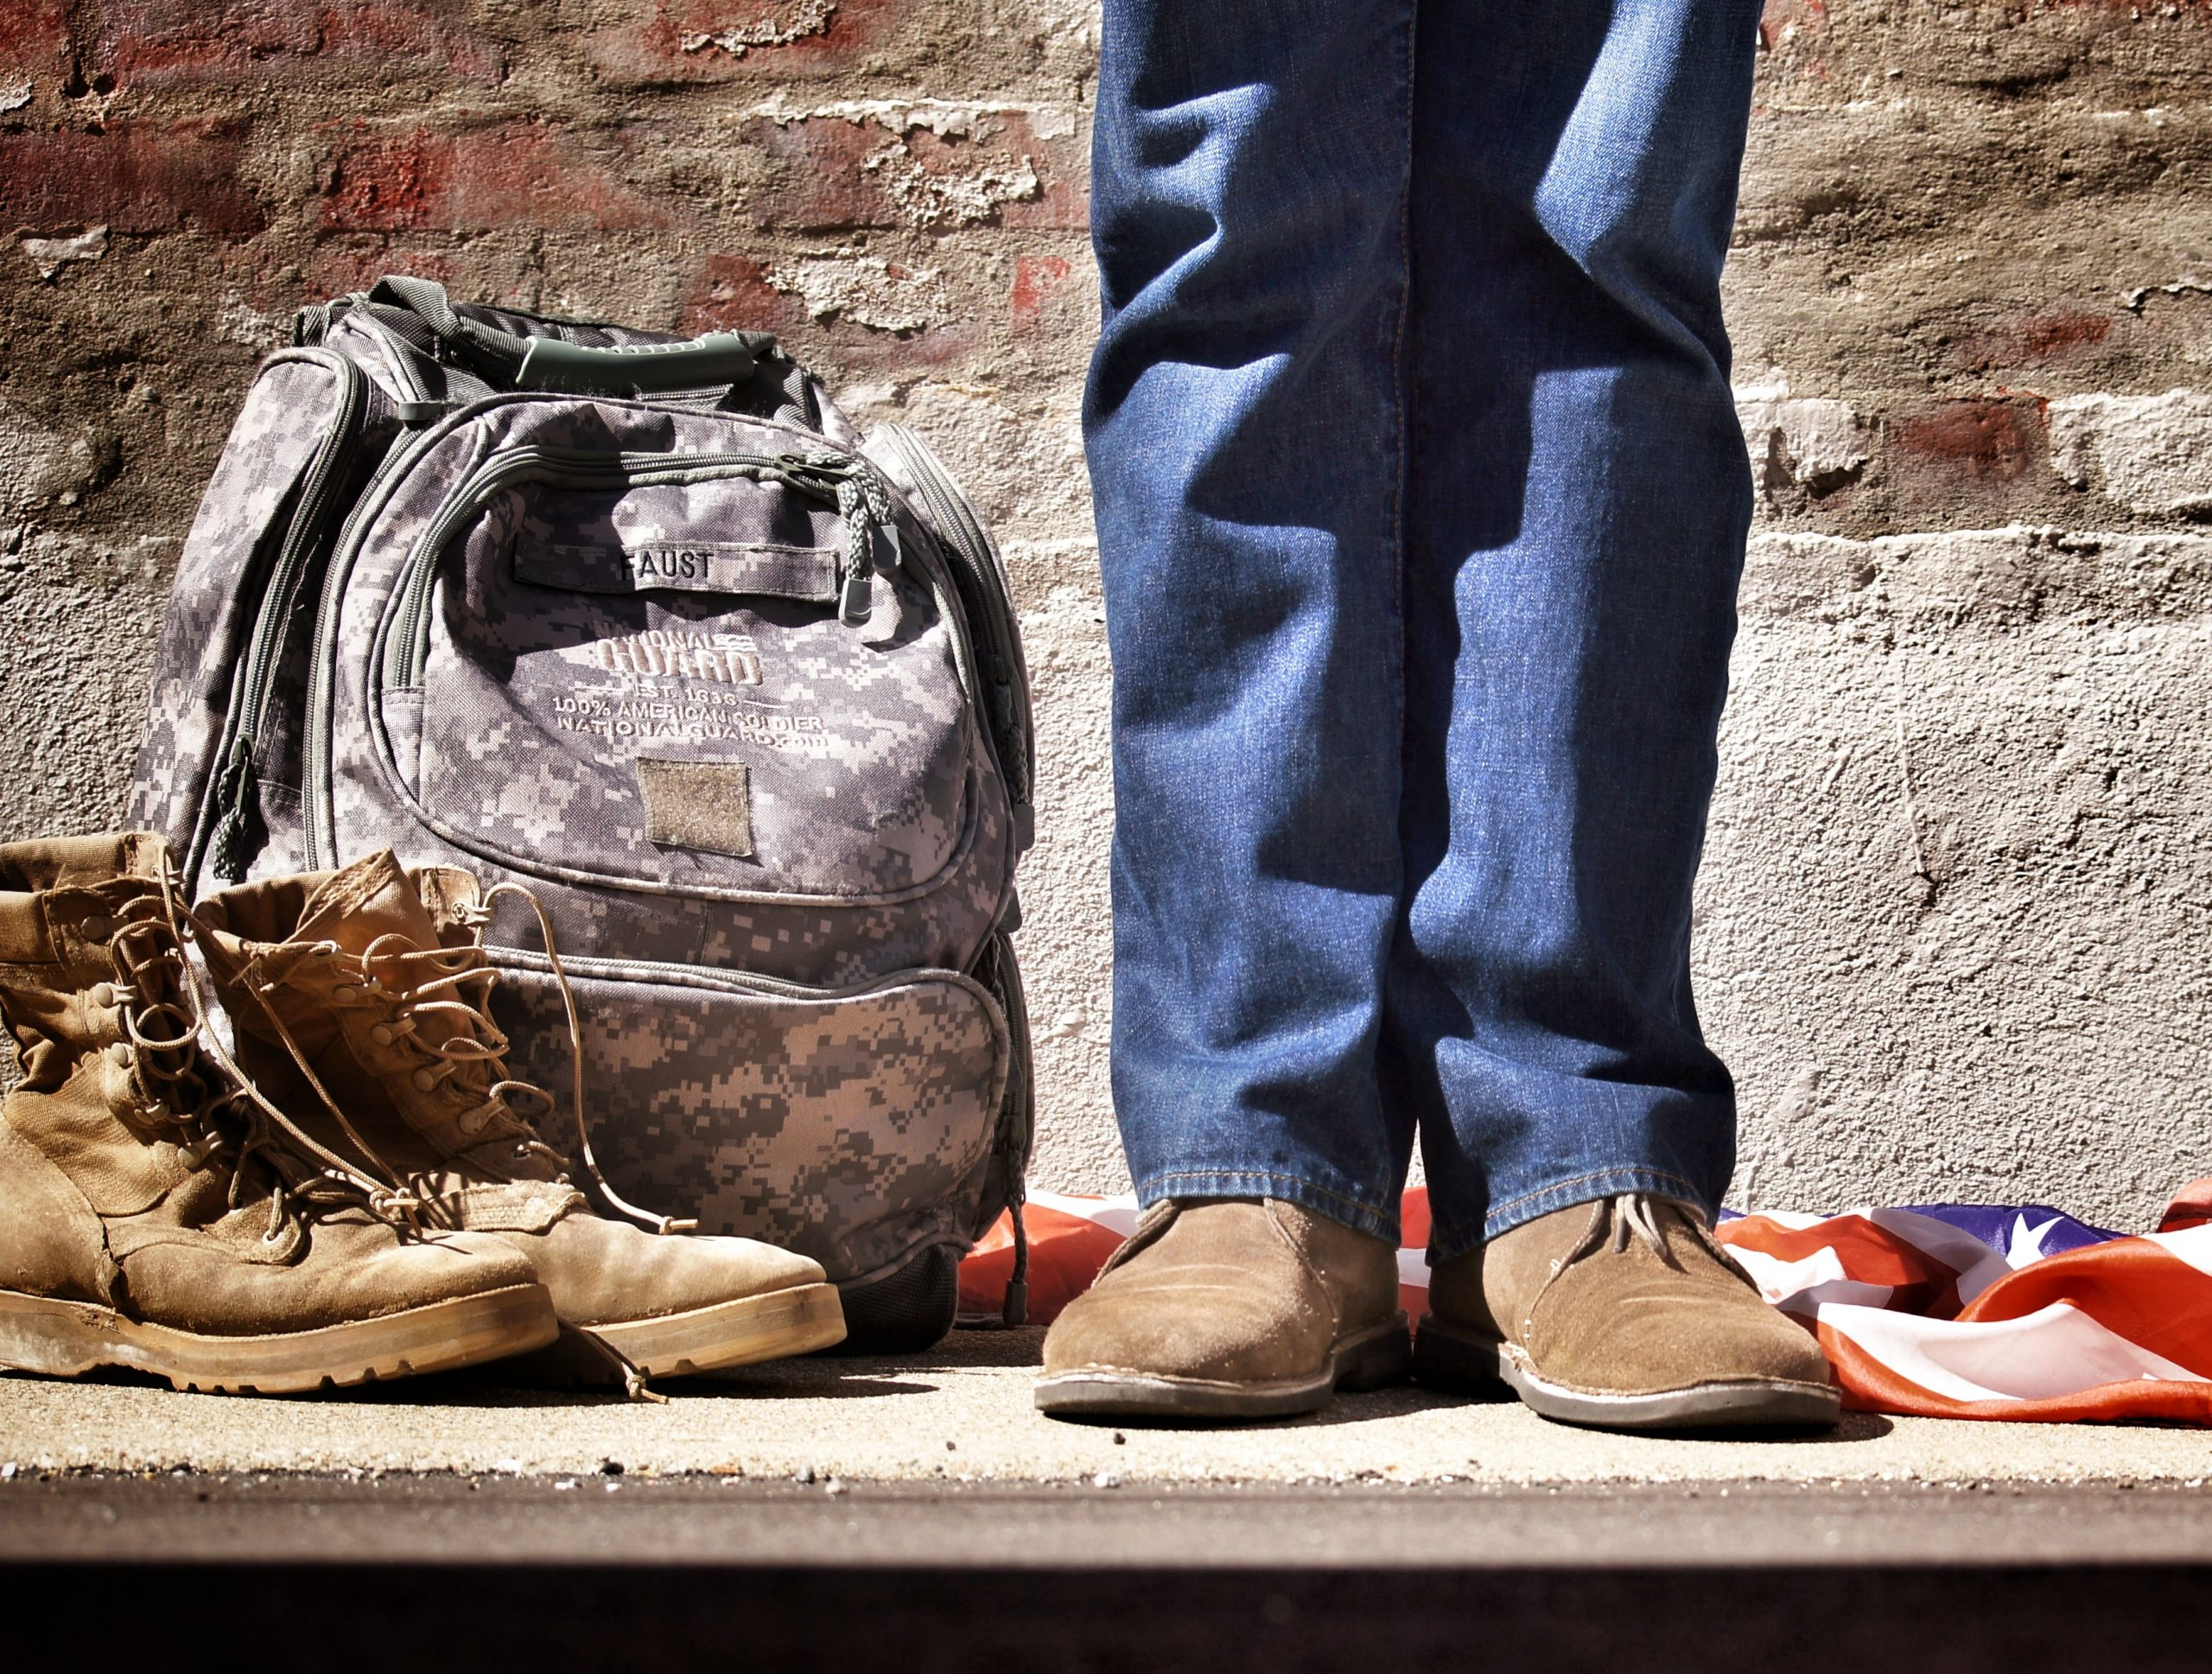 5 Veteran-Owned Businesses To Support On Veteran's Day